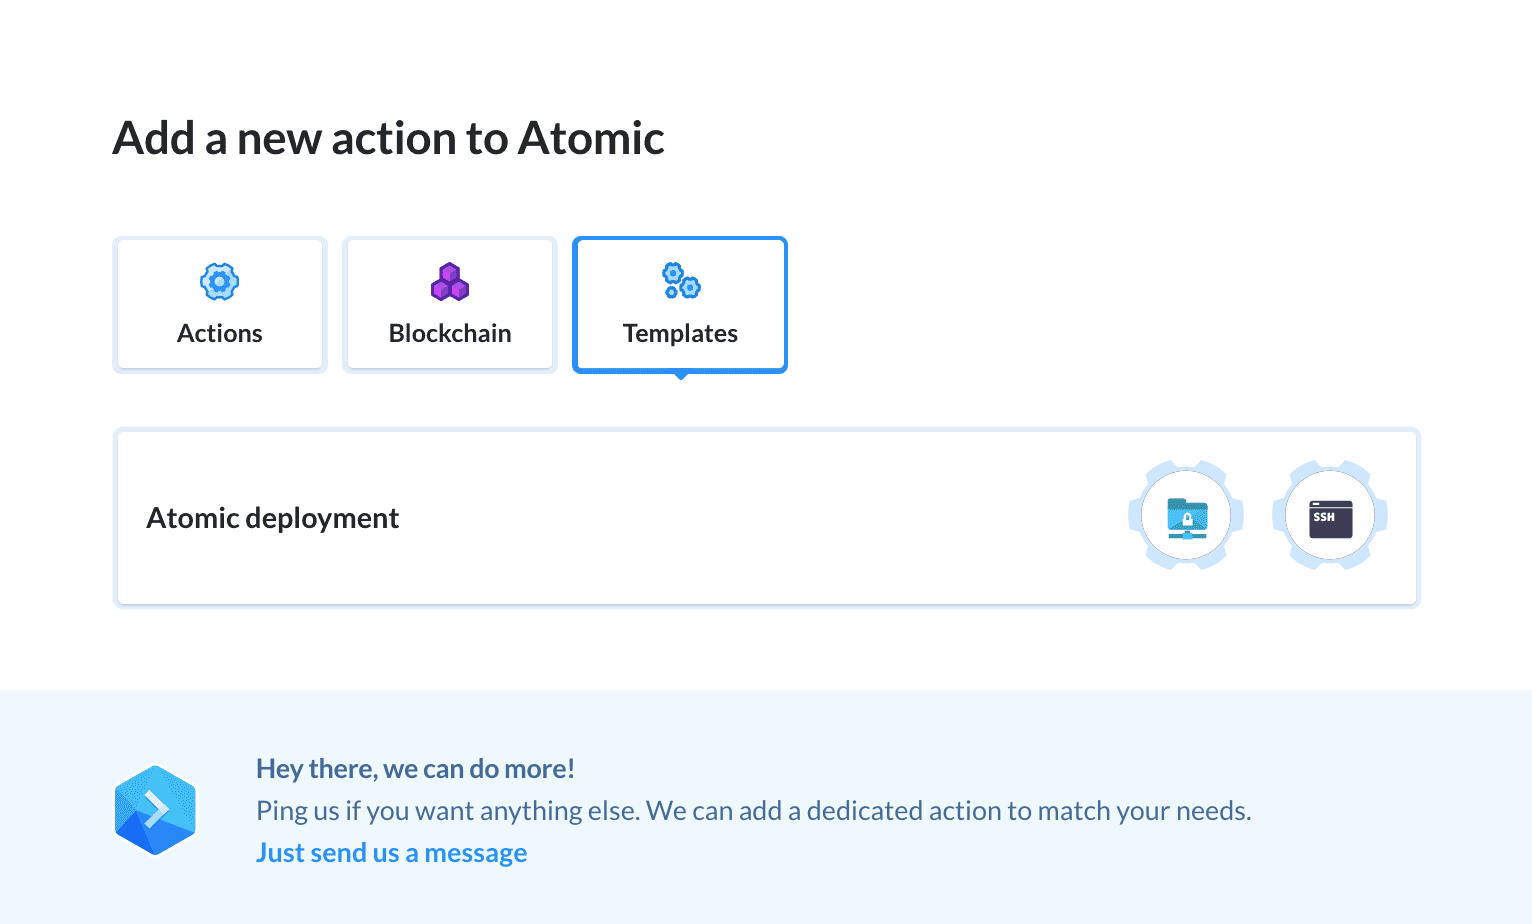 Atomic deployment template